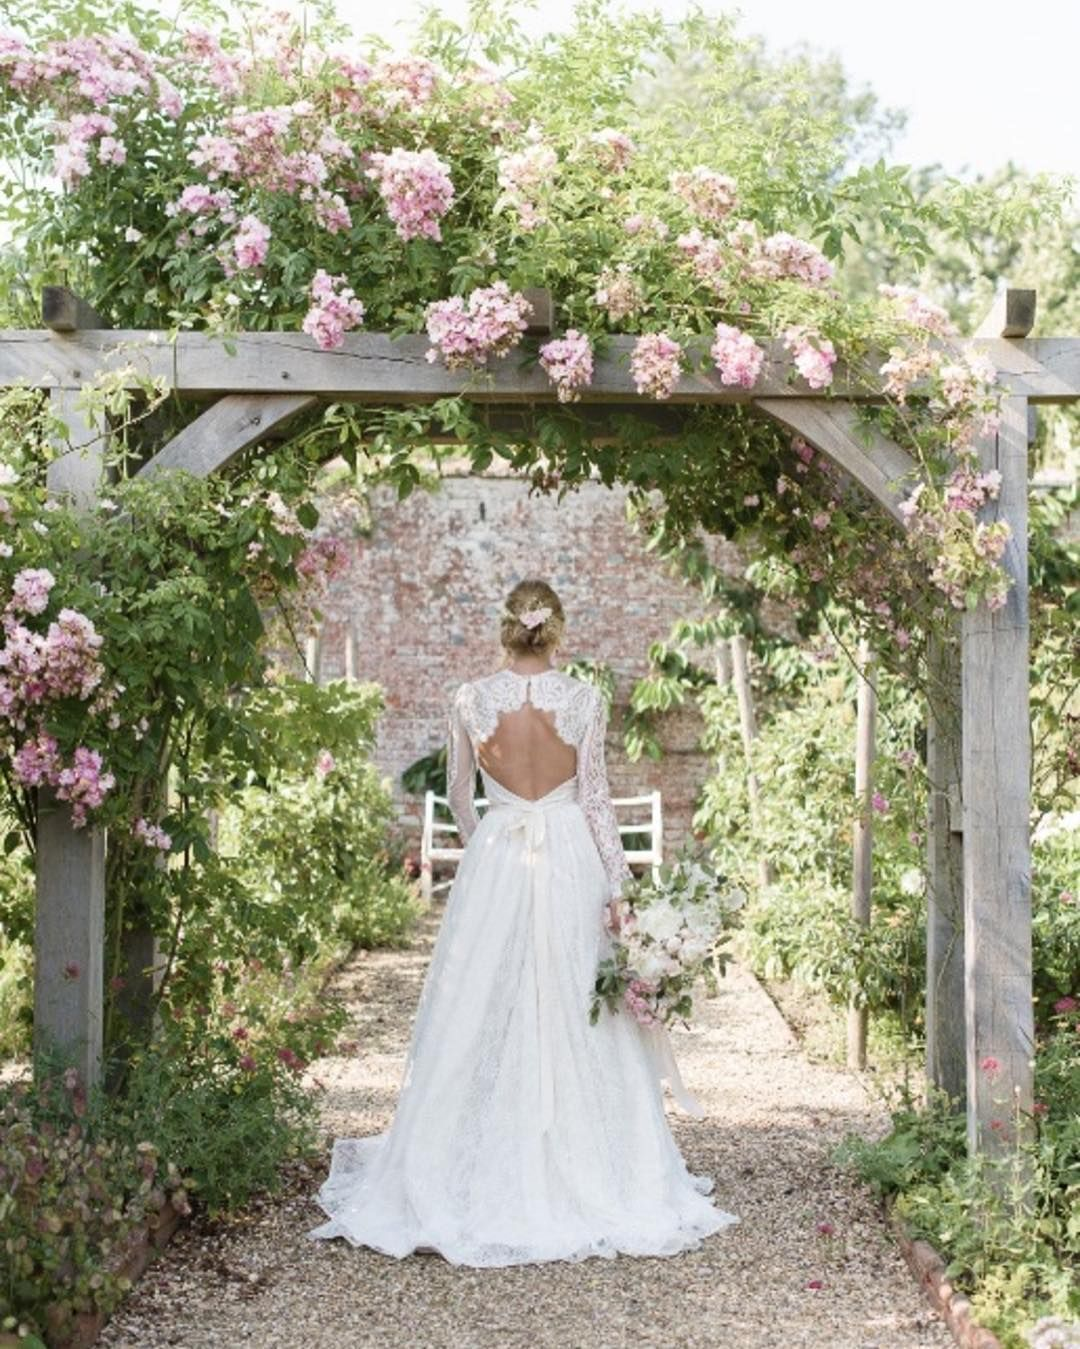 Garden goals dress goals  I'm up super early for wedding set up at Pembroke Lodge and then I have a wedding diy workshop tomorrow - can't wait. On Monday I will sleep. This image from gorgeous shoot up on @magnoliarouge  The dream team.... Photography: @juliemphotos  Videography: @thismodernrevelry  Venue: @falconhurst  Dress: @shehurina  Styling: @laurajeholden  Shoes: @emmyshoes  Suit: @sbssuiting  Jewellery and veil: @kellyspencewed  Ring: @london_victorian_ring_co  Fabrics…